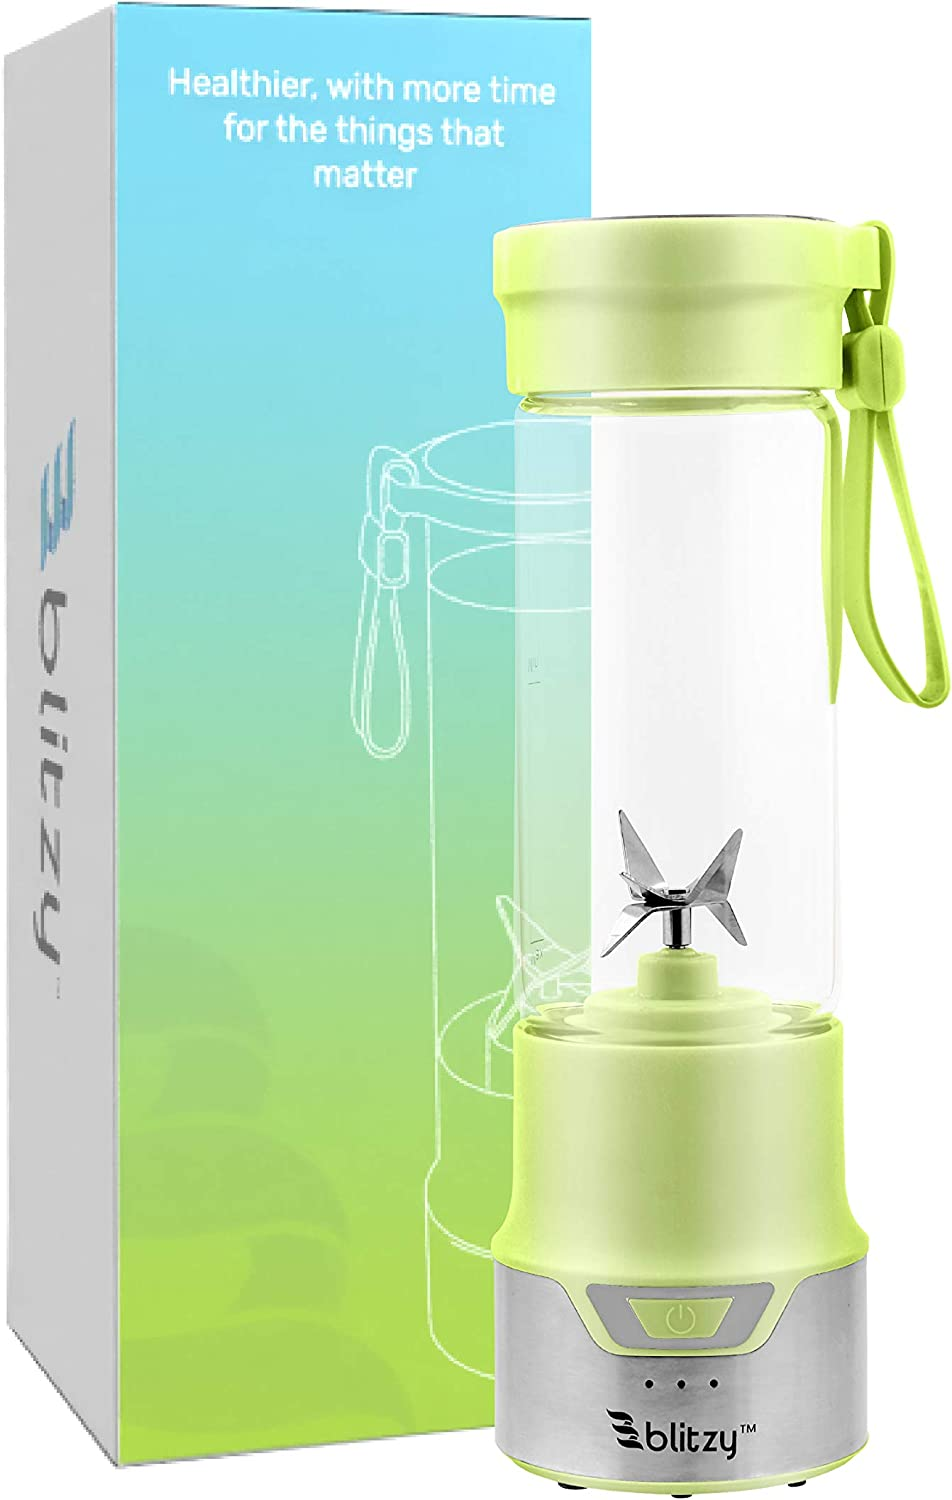 Blitzy Portable Blender USB Rechargeable Electric Portable Blender, 16oz Stainless Steel and Glass Blender Green